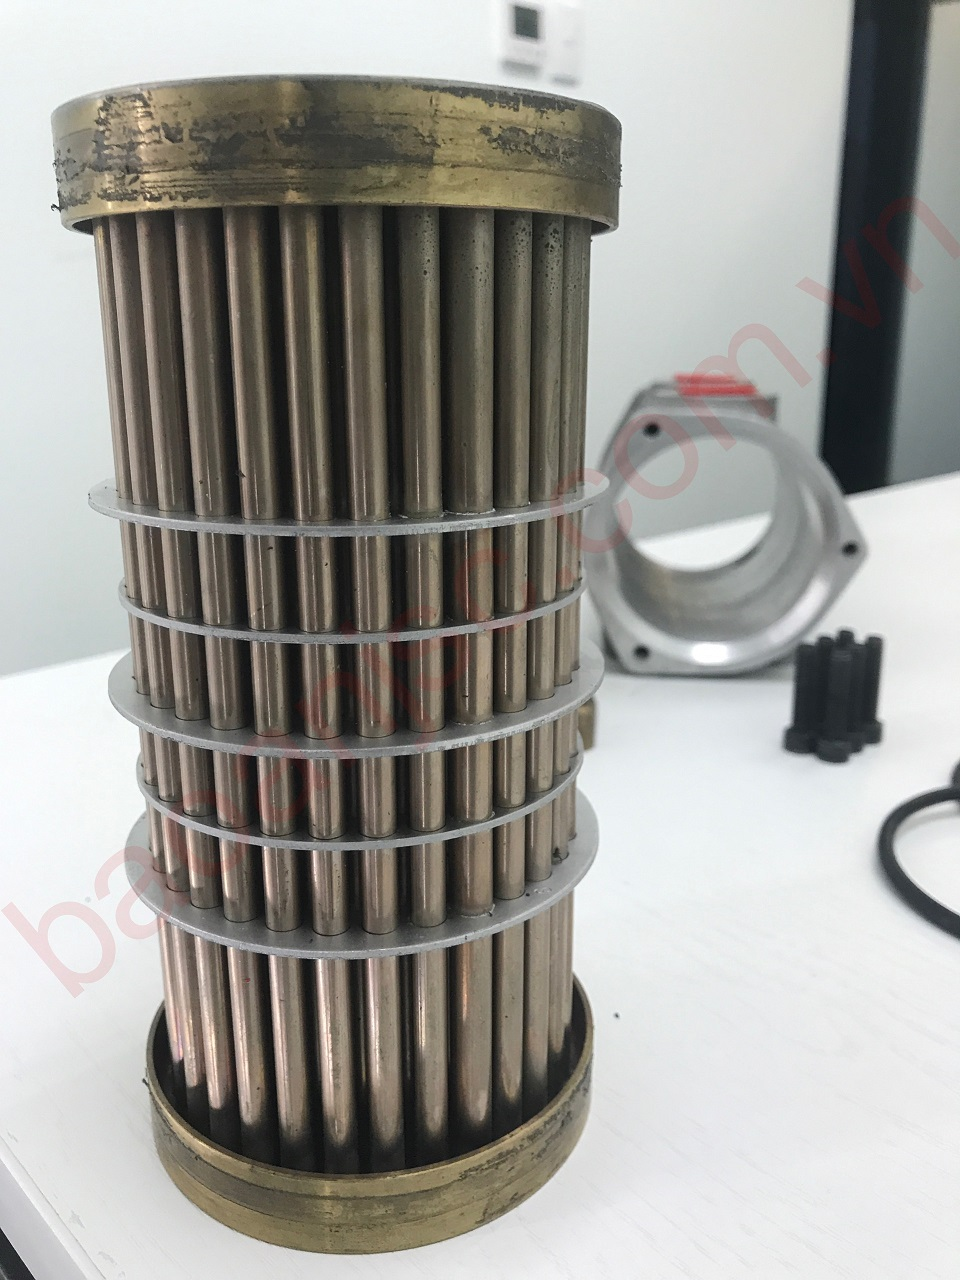 Bo tri duong ong trong bo oil cooler ALLIED HEAT TRANSFER - BOWMAN